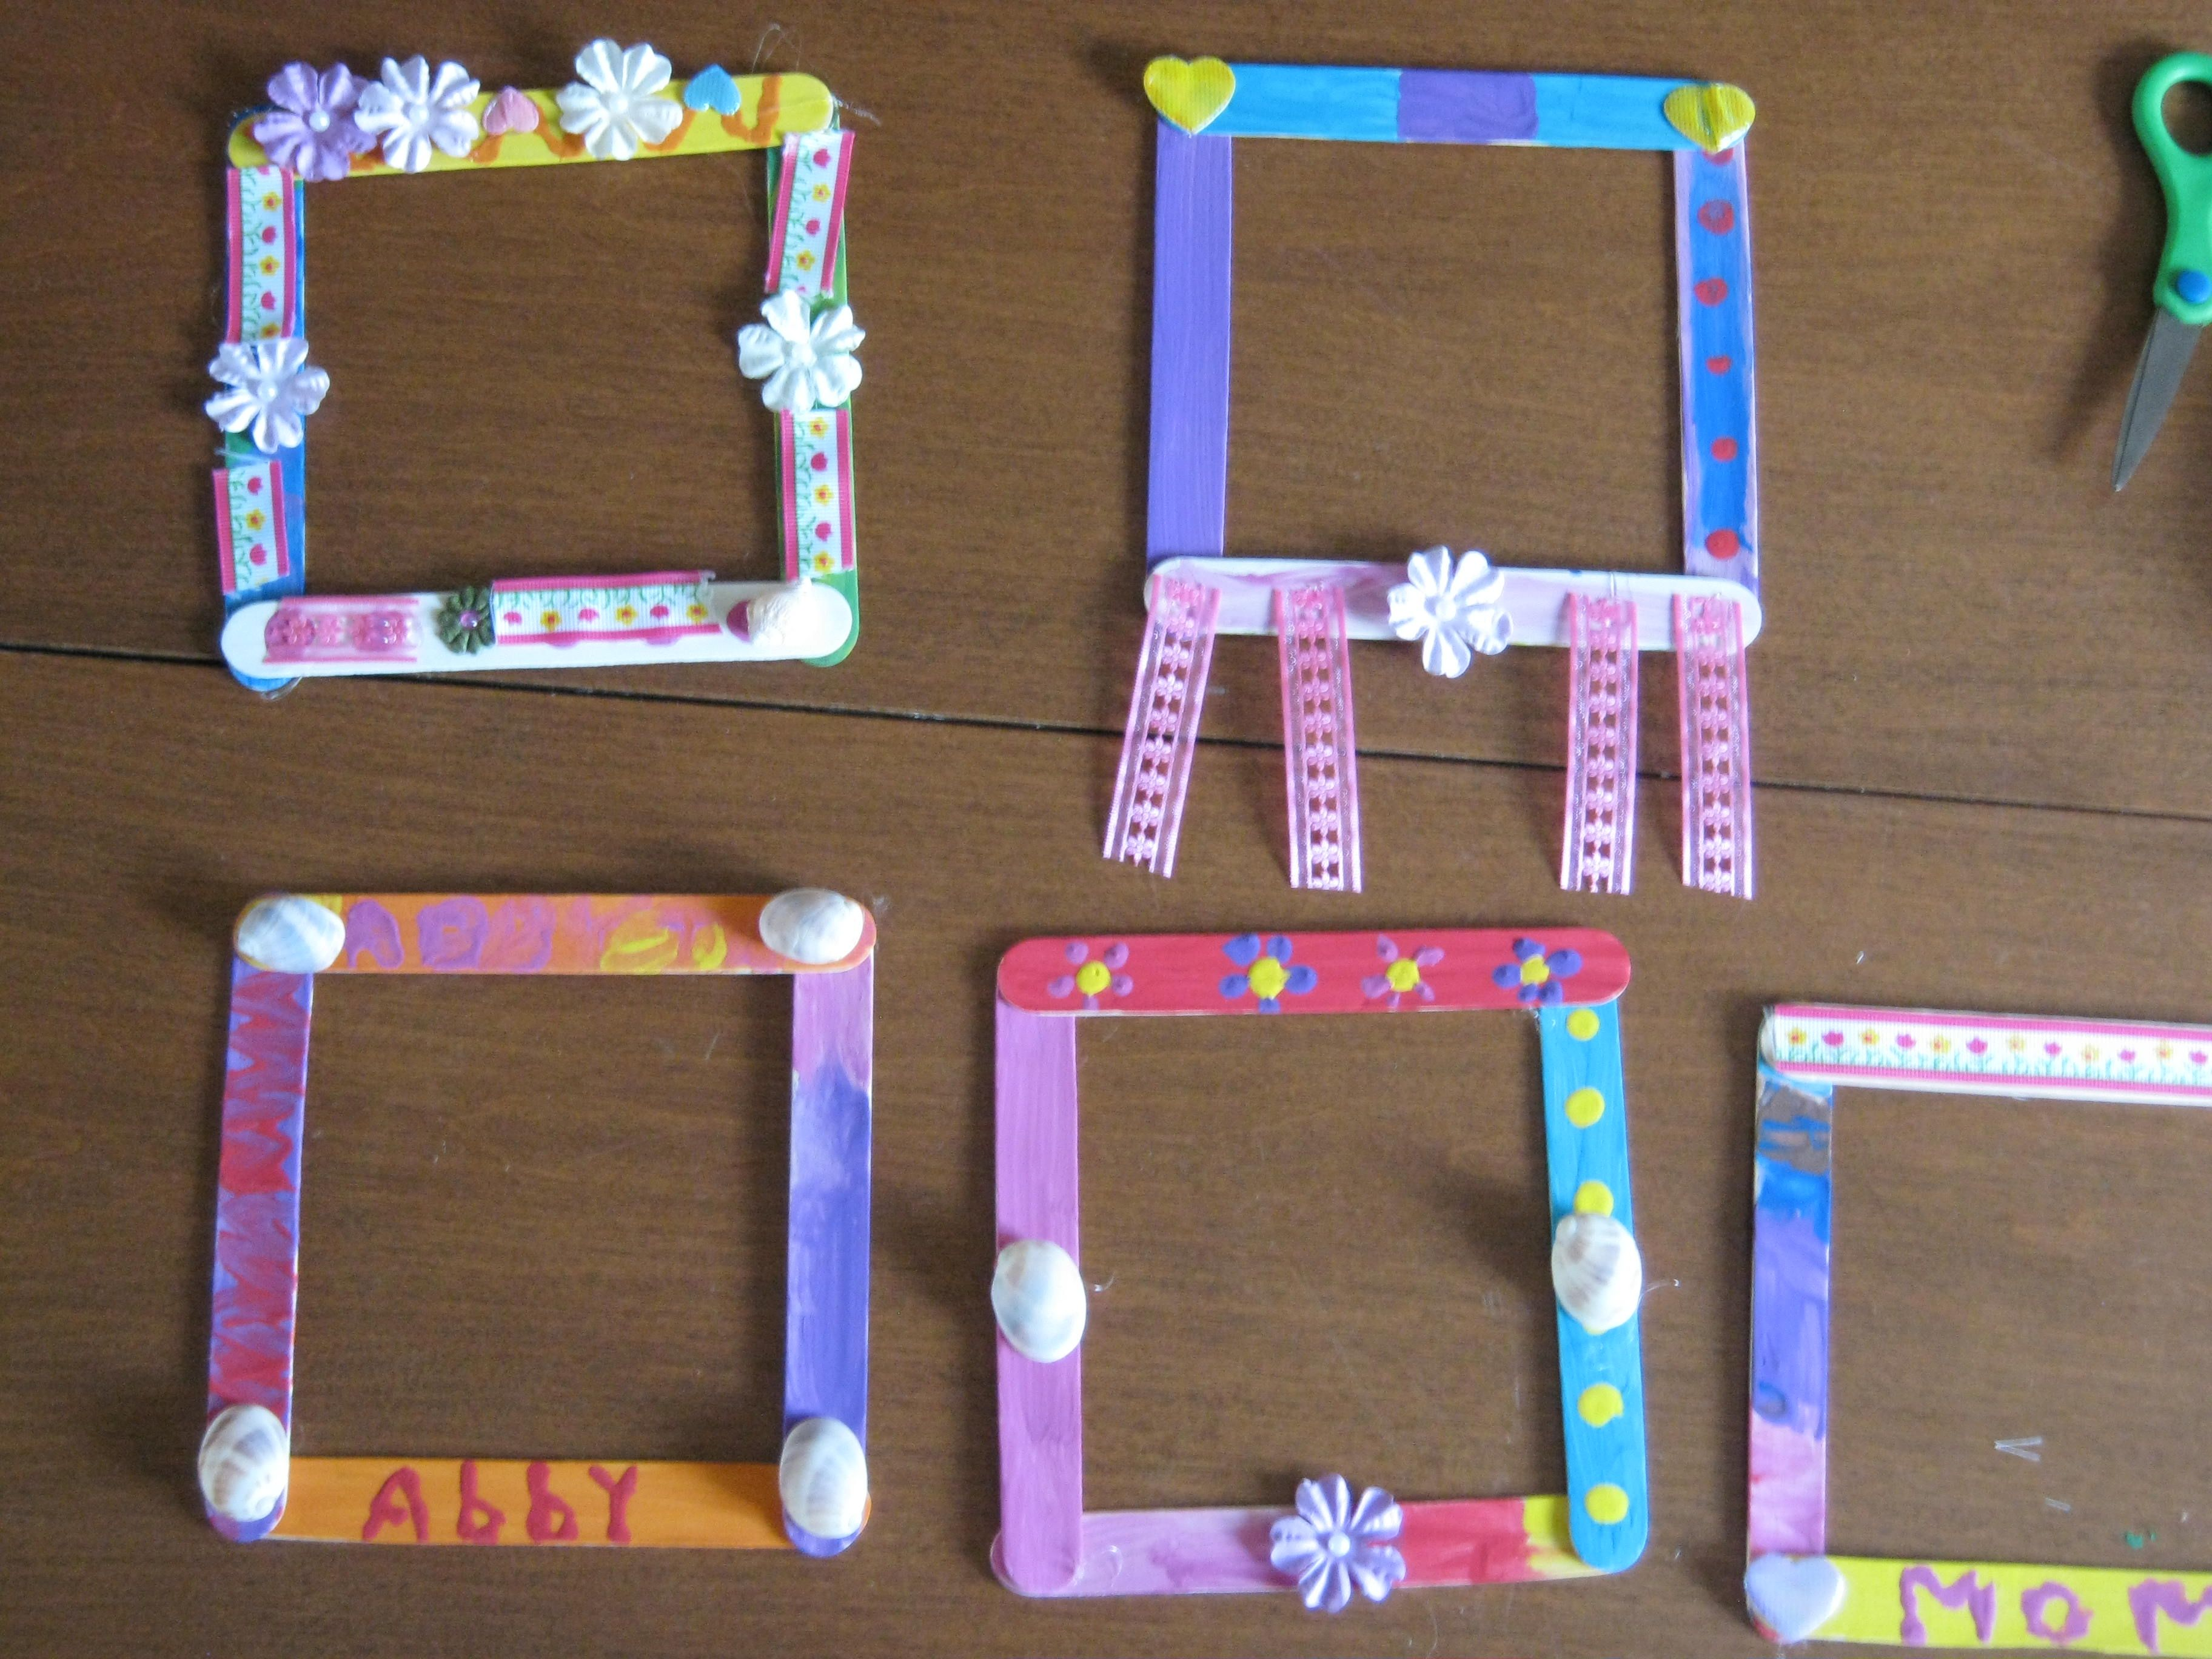 Pin By Rae Nar On Craft Ideas Popsicle Stick Picture Frame